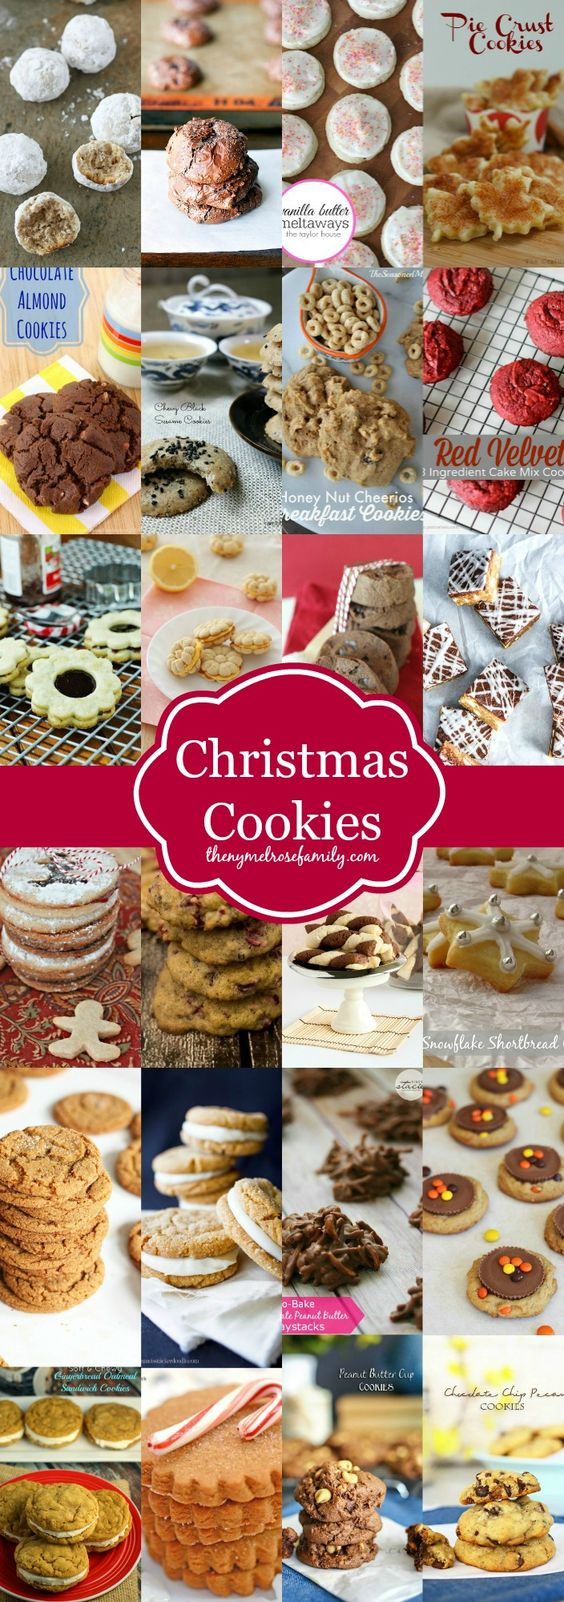 Gluten free, Free recipes and Everything on Pinterest